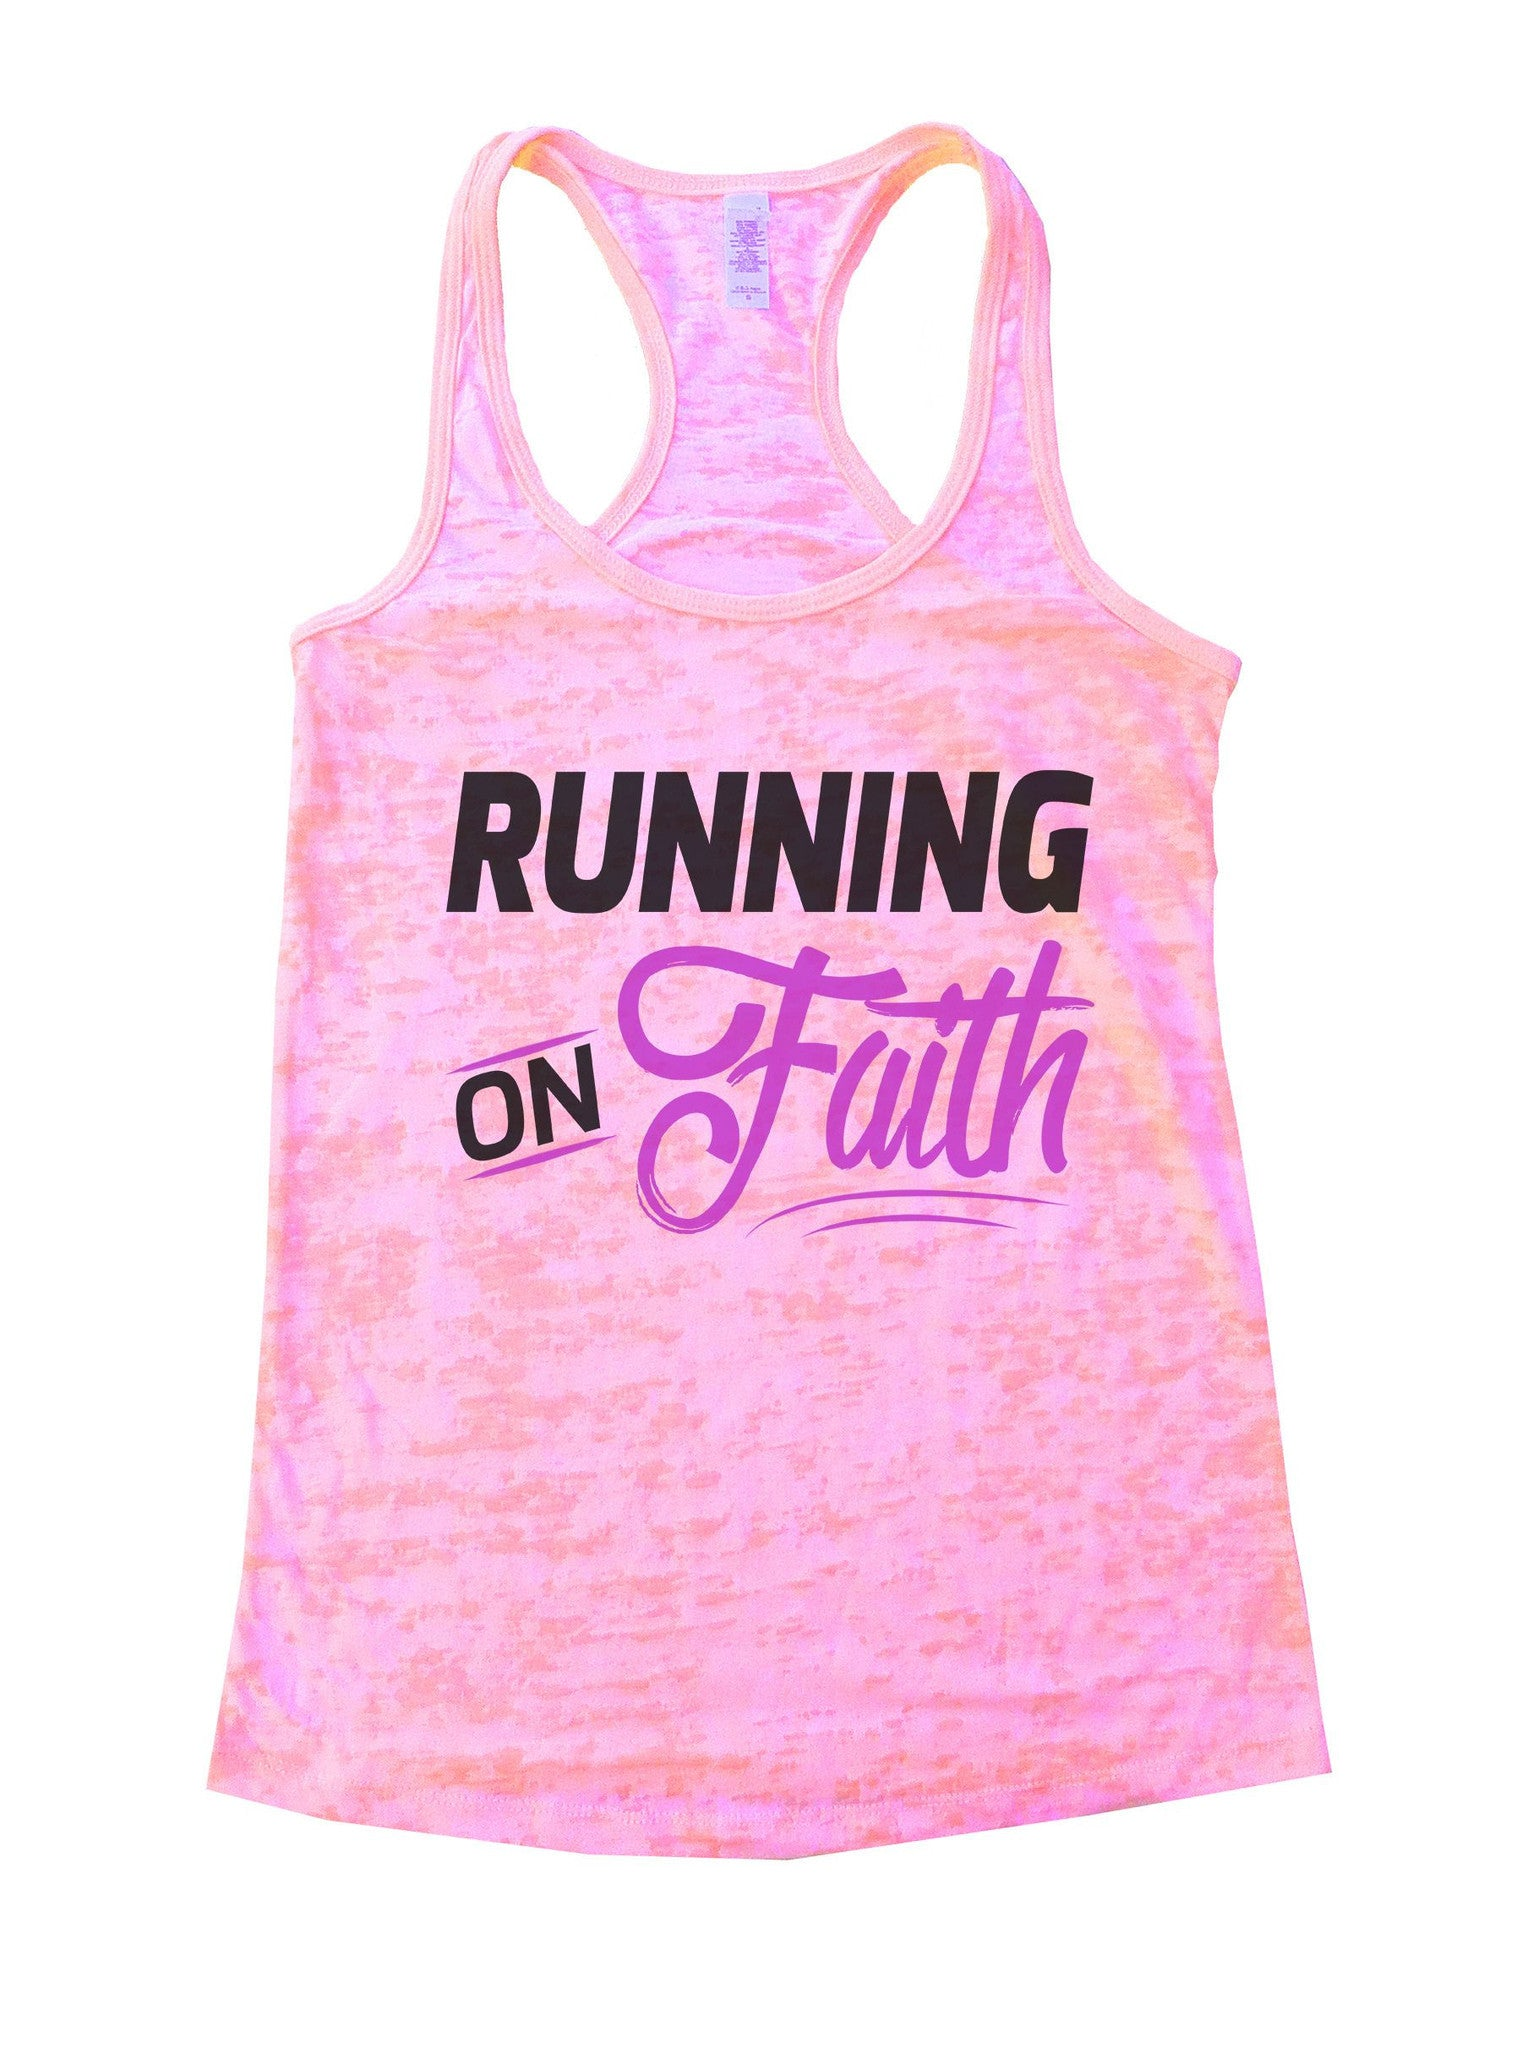 Running On Faith Burnout Tank Top By BurnoutTankTops.com - 1073 - Funny Shirts Tank Tops Burnouts and Triblends  - 2